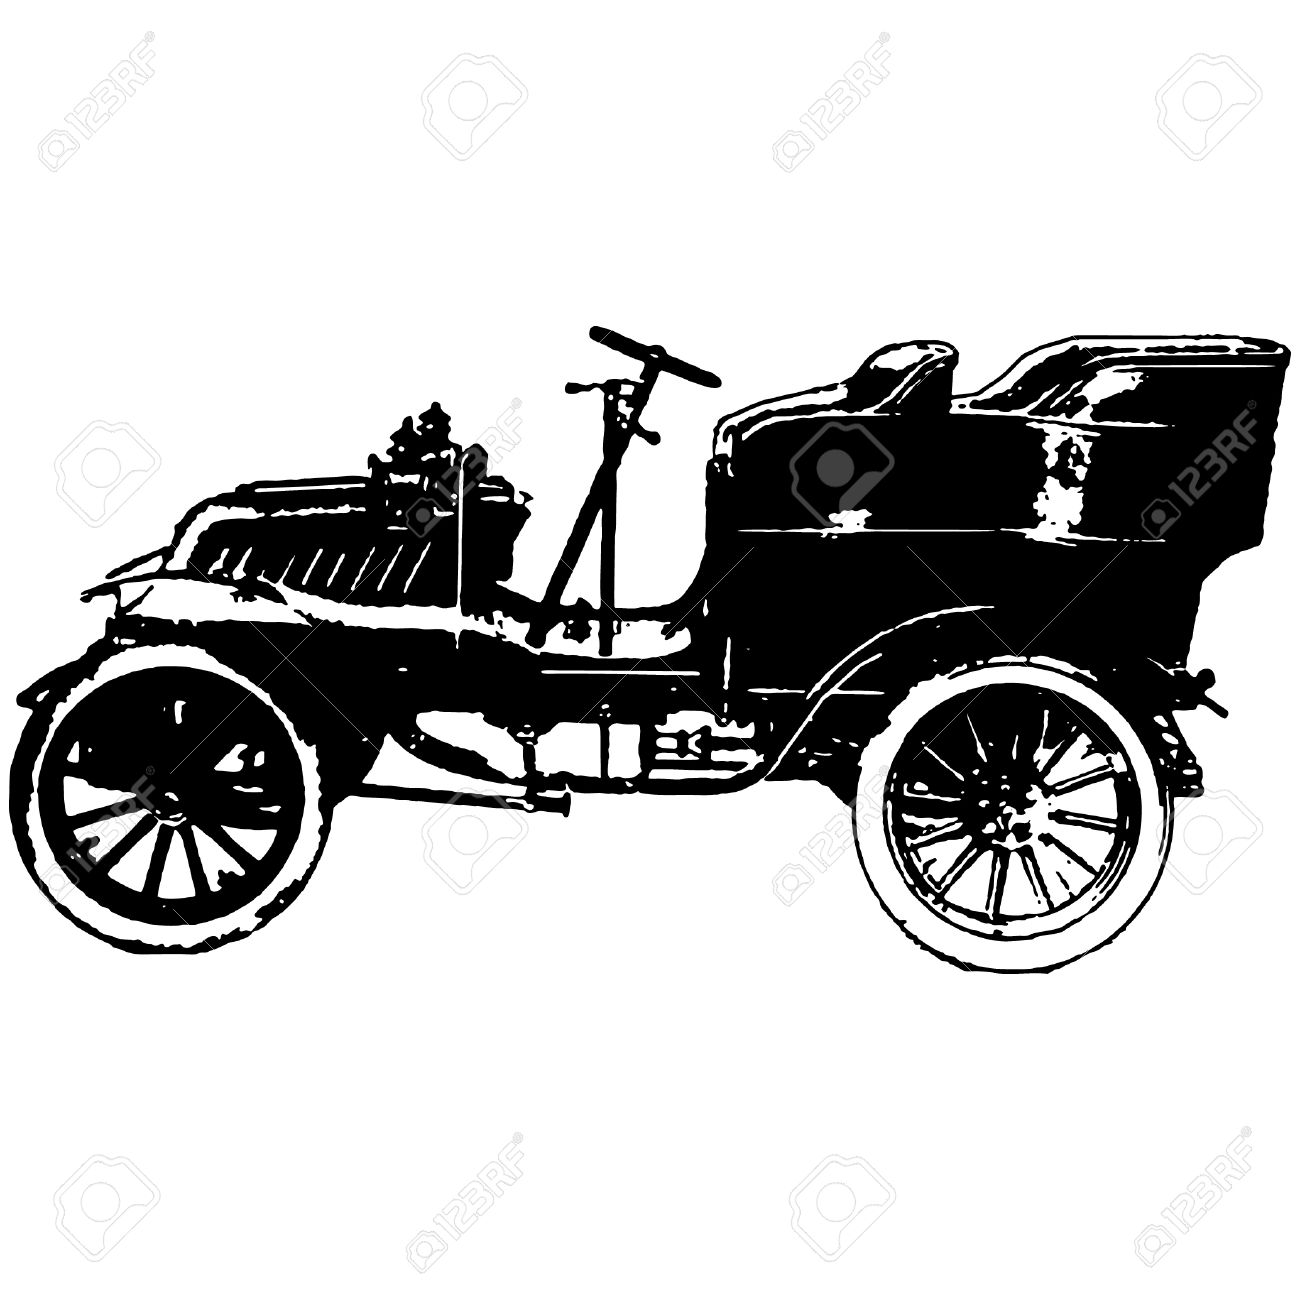 Old Timer Car Vector Illustration Royalty Free Cliparts, Vectors.